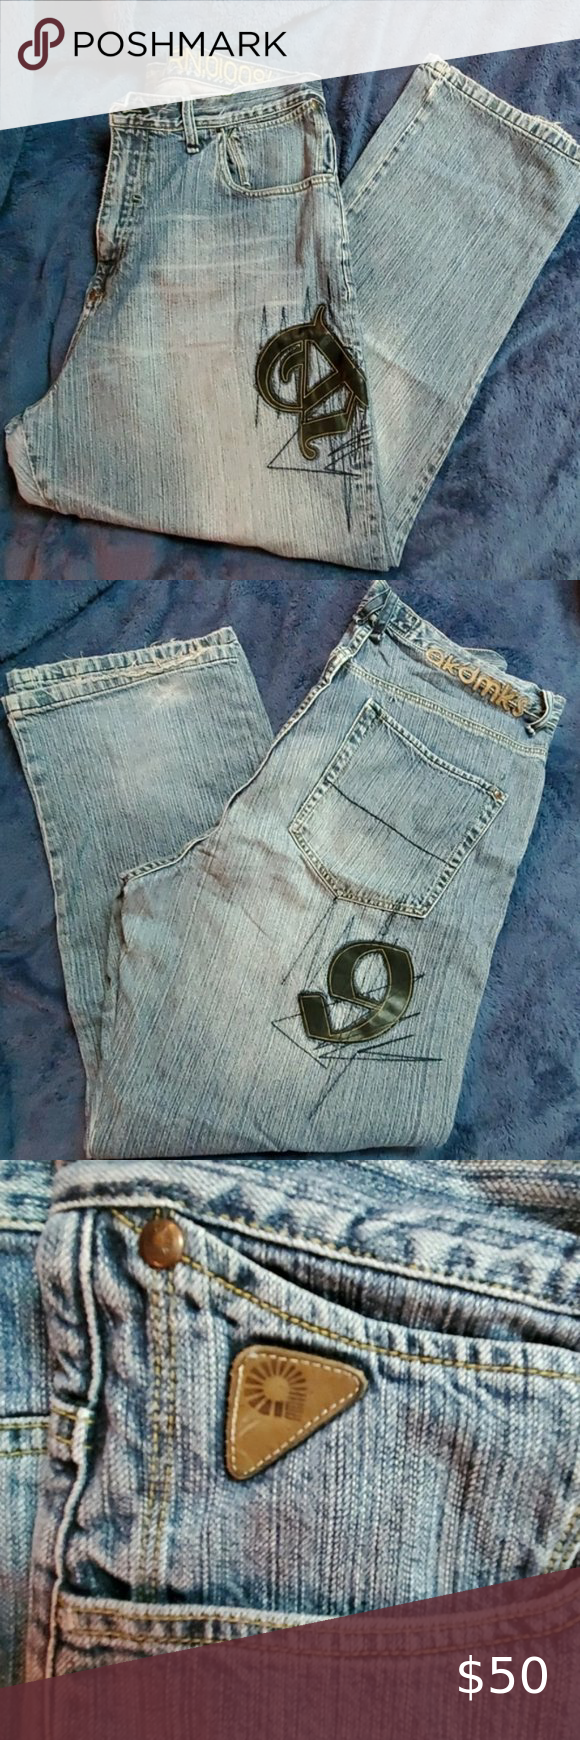 vintage akademiks Jeans excellent    Used condition, 100% cotton Akademiks Jeans Relaxed